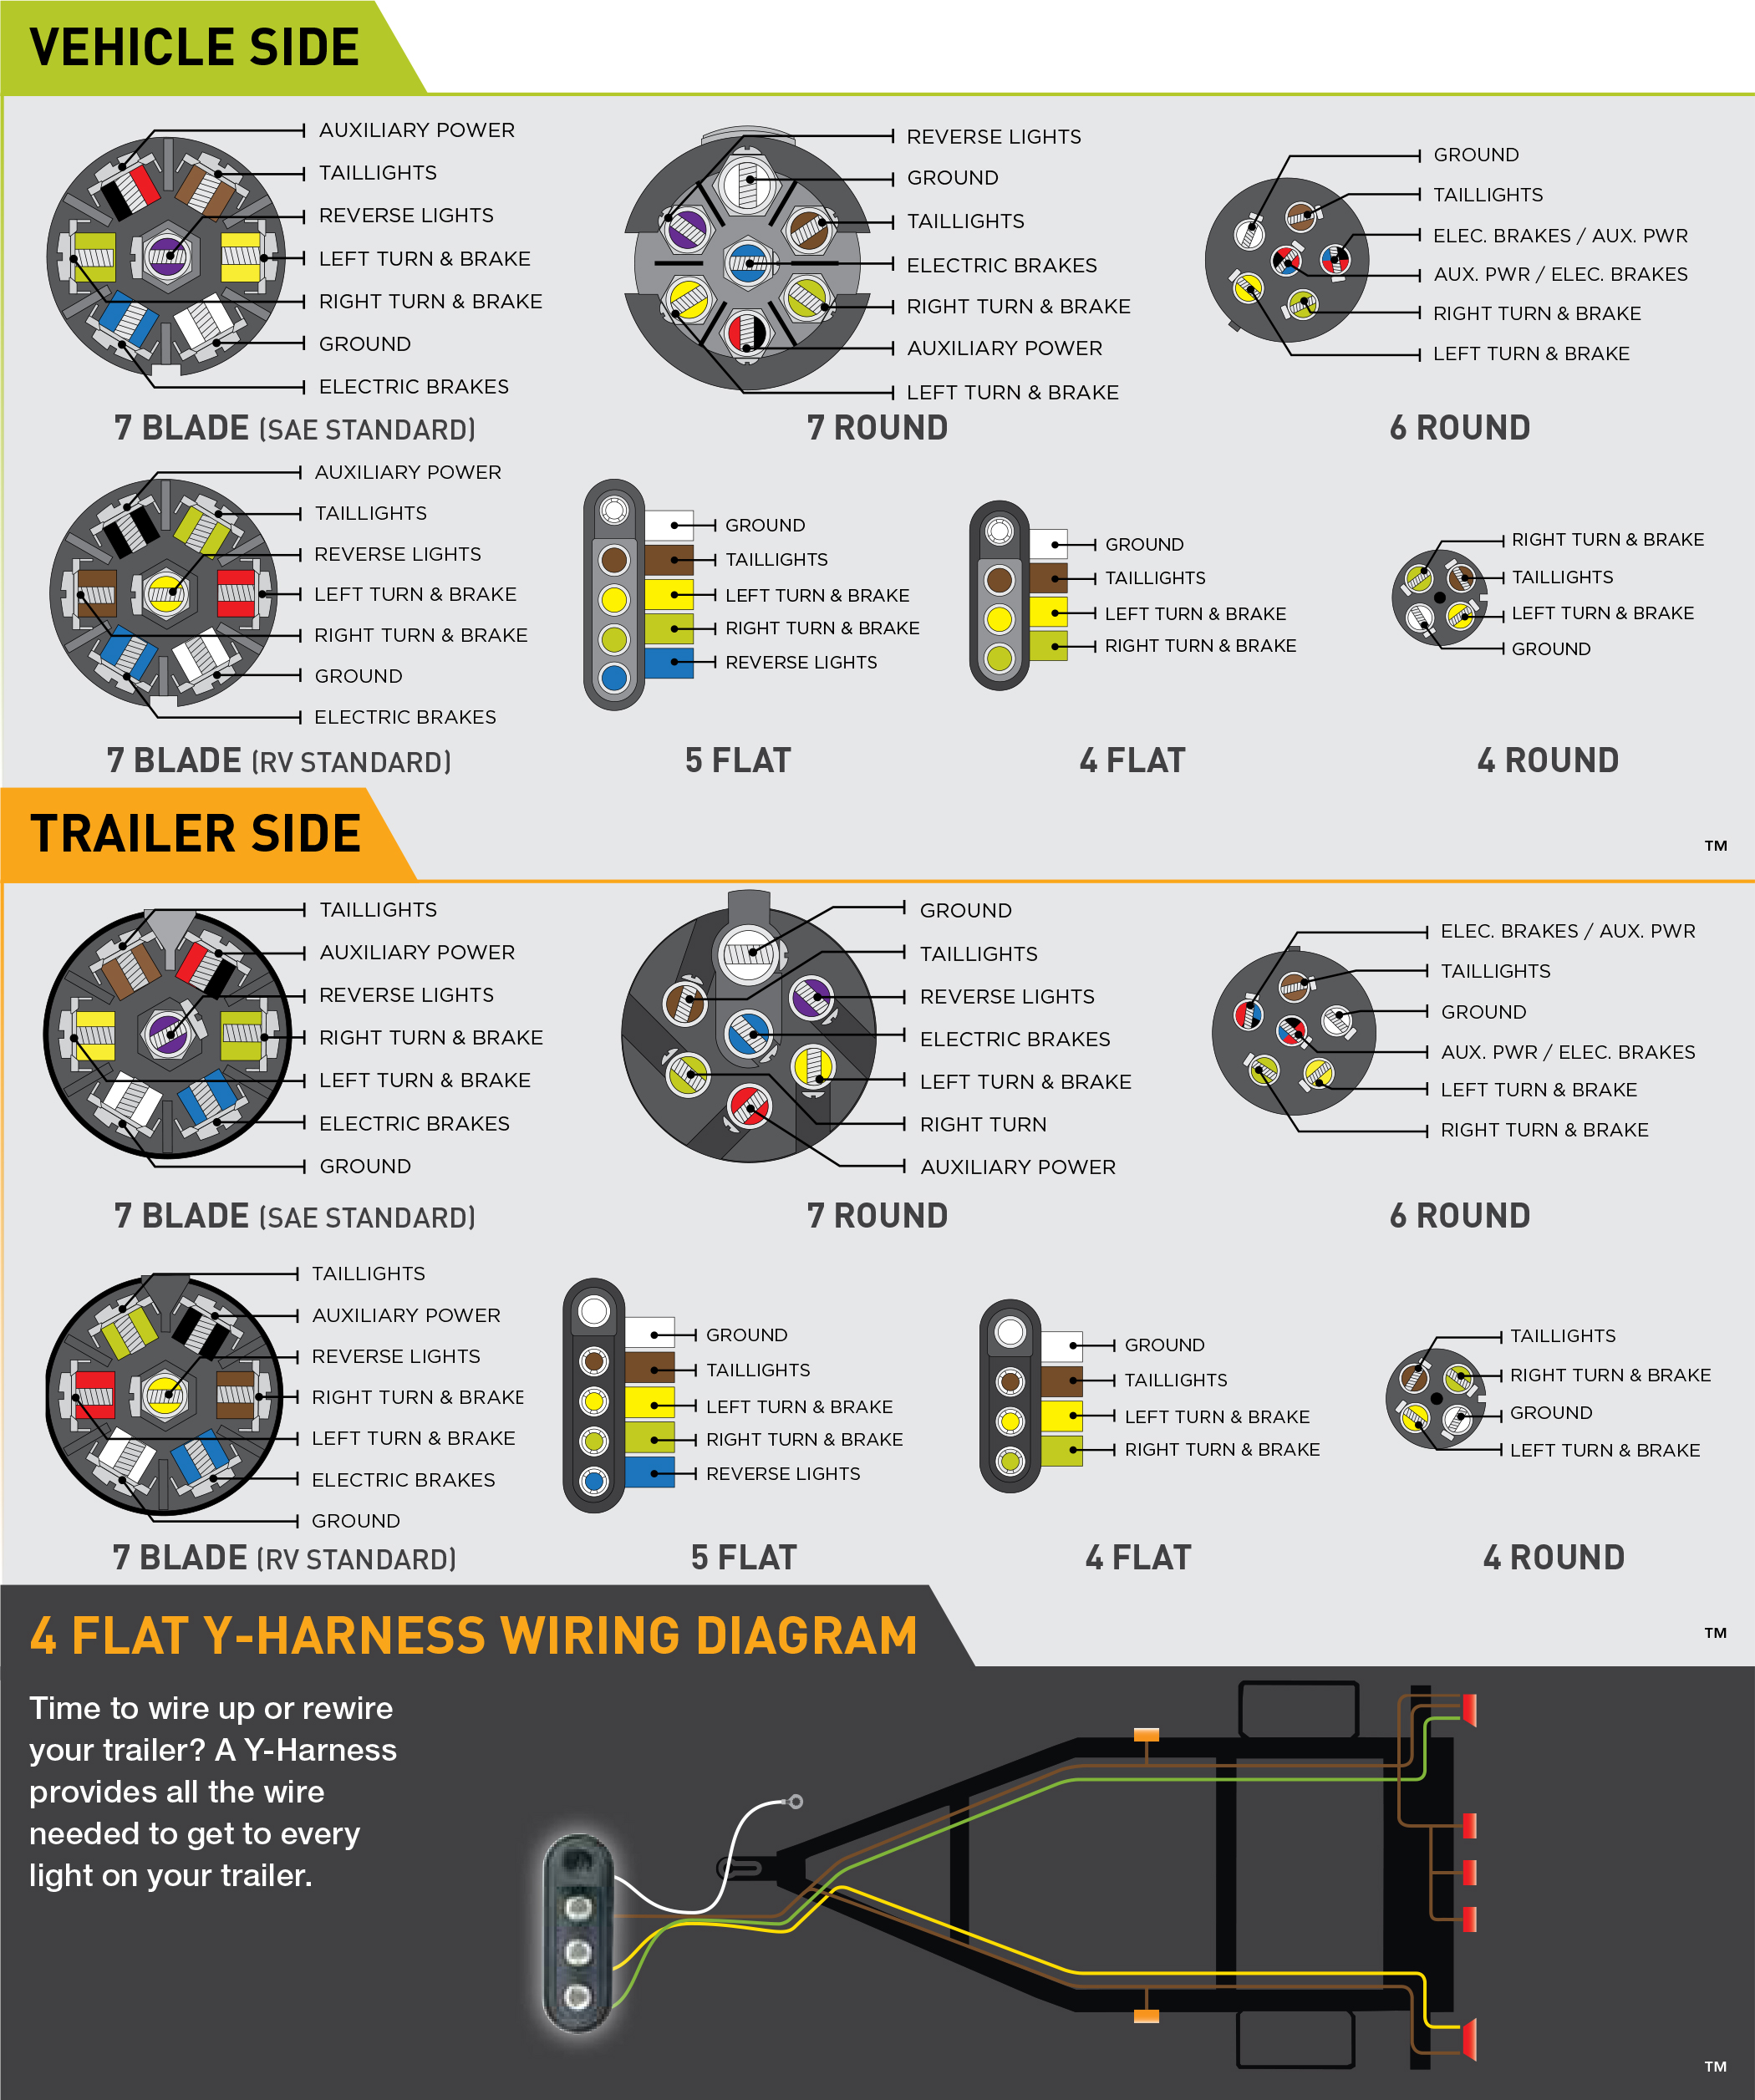 [SCHEMATICS_4JK]  Hopkins Brake Controller Wiring Diagram - Wiring Diagrams | Impulse Trailer Brake Wiring Diagram |  | karox.fr